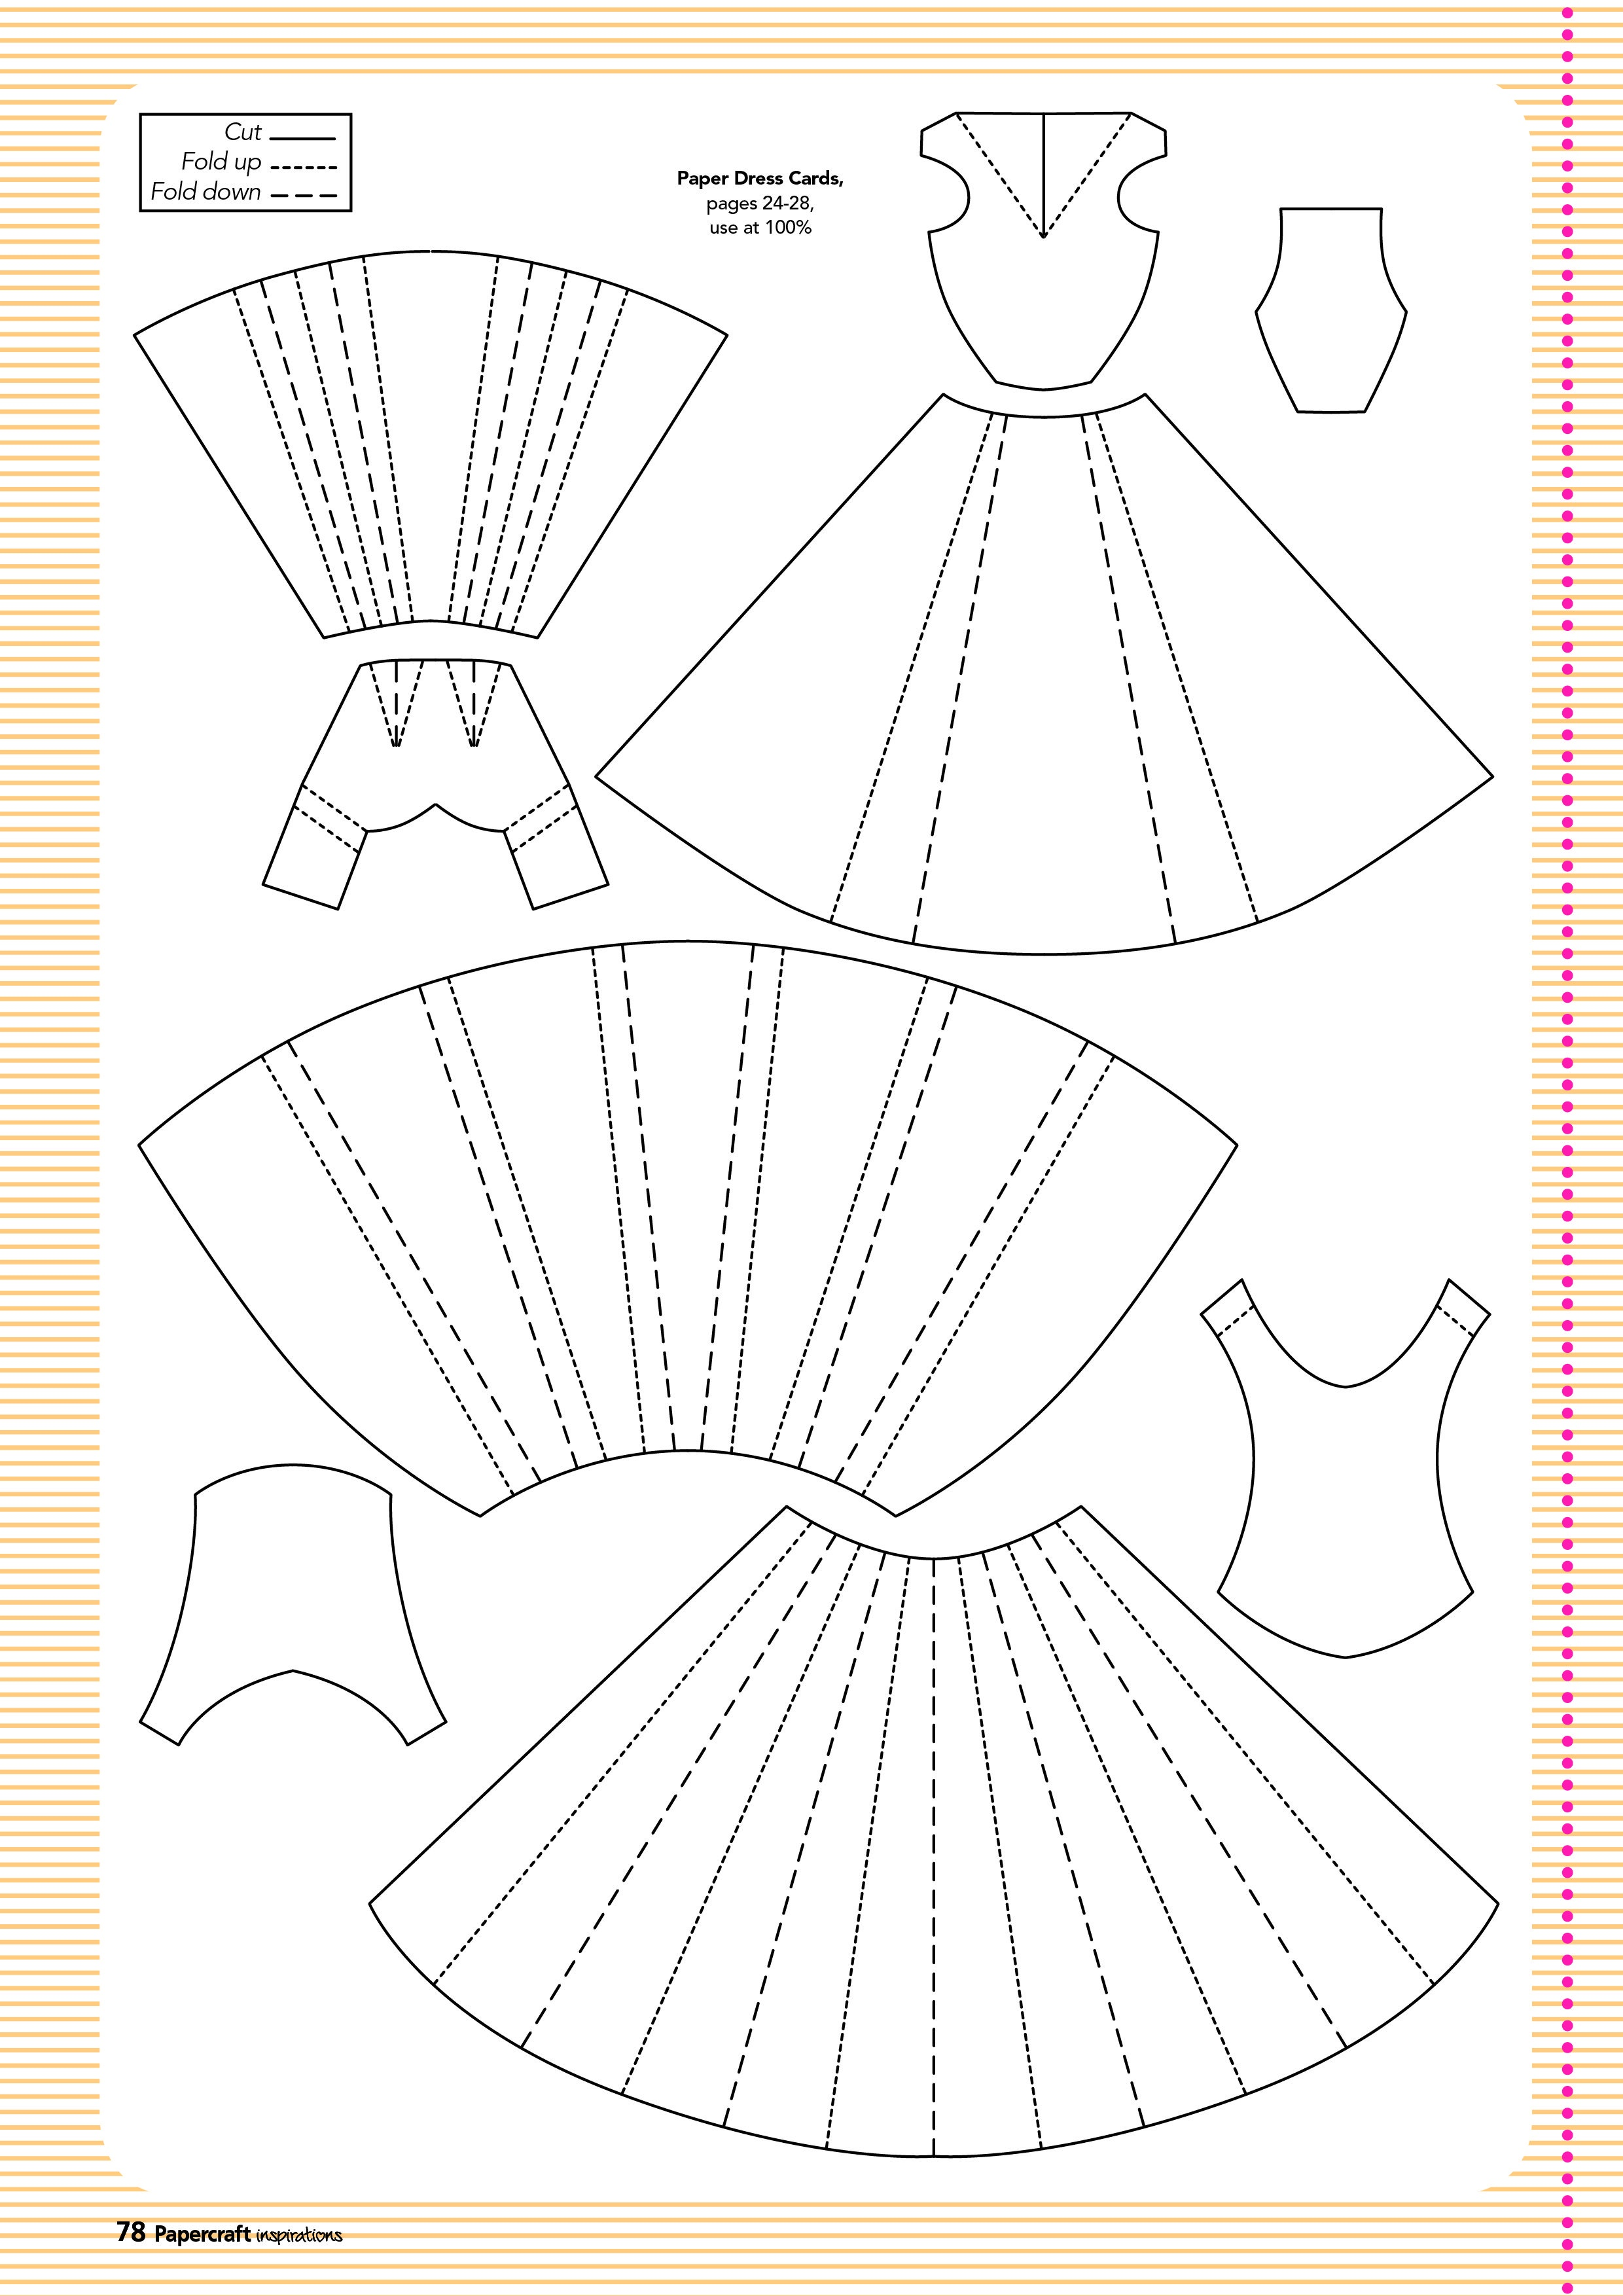 Free Templates From Papercraft Inspirations 129   Cards-N-Tags - Printable Paper Crafts Free